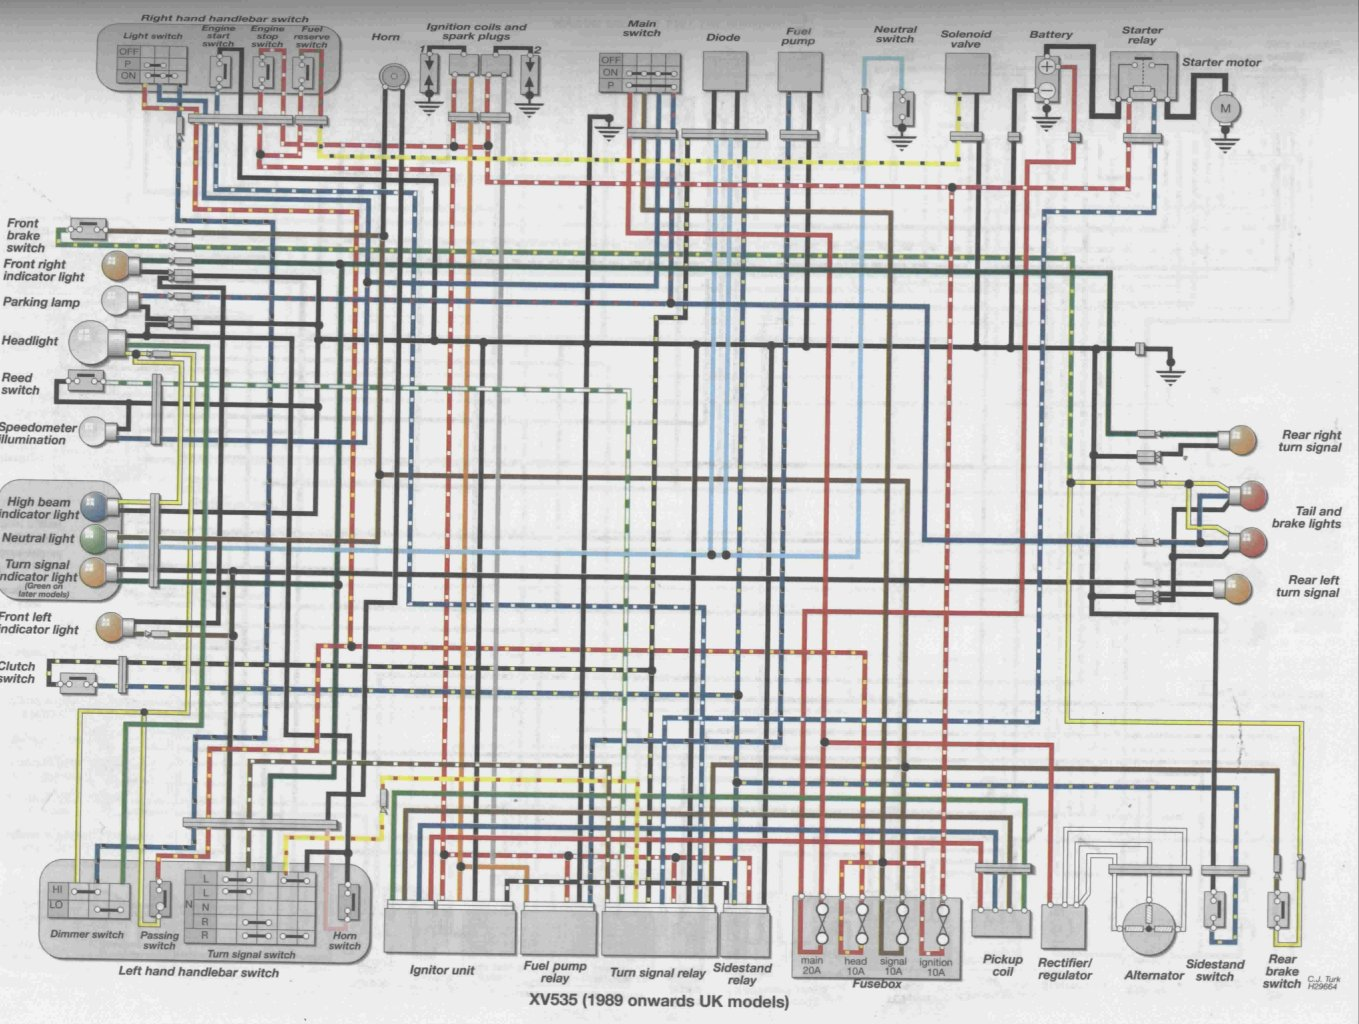 here s a link to a suitable wiring diagram that may help you courtesy of virago tech com  [ 1359 x 1024 Pixel ]